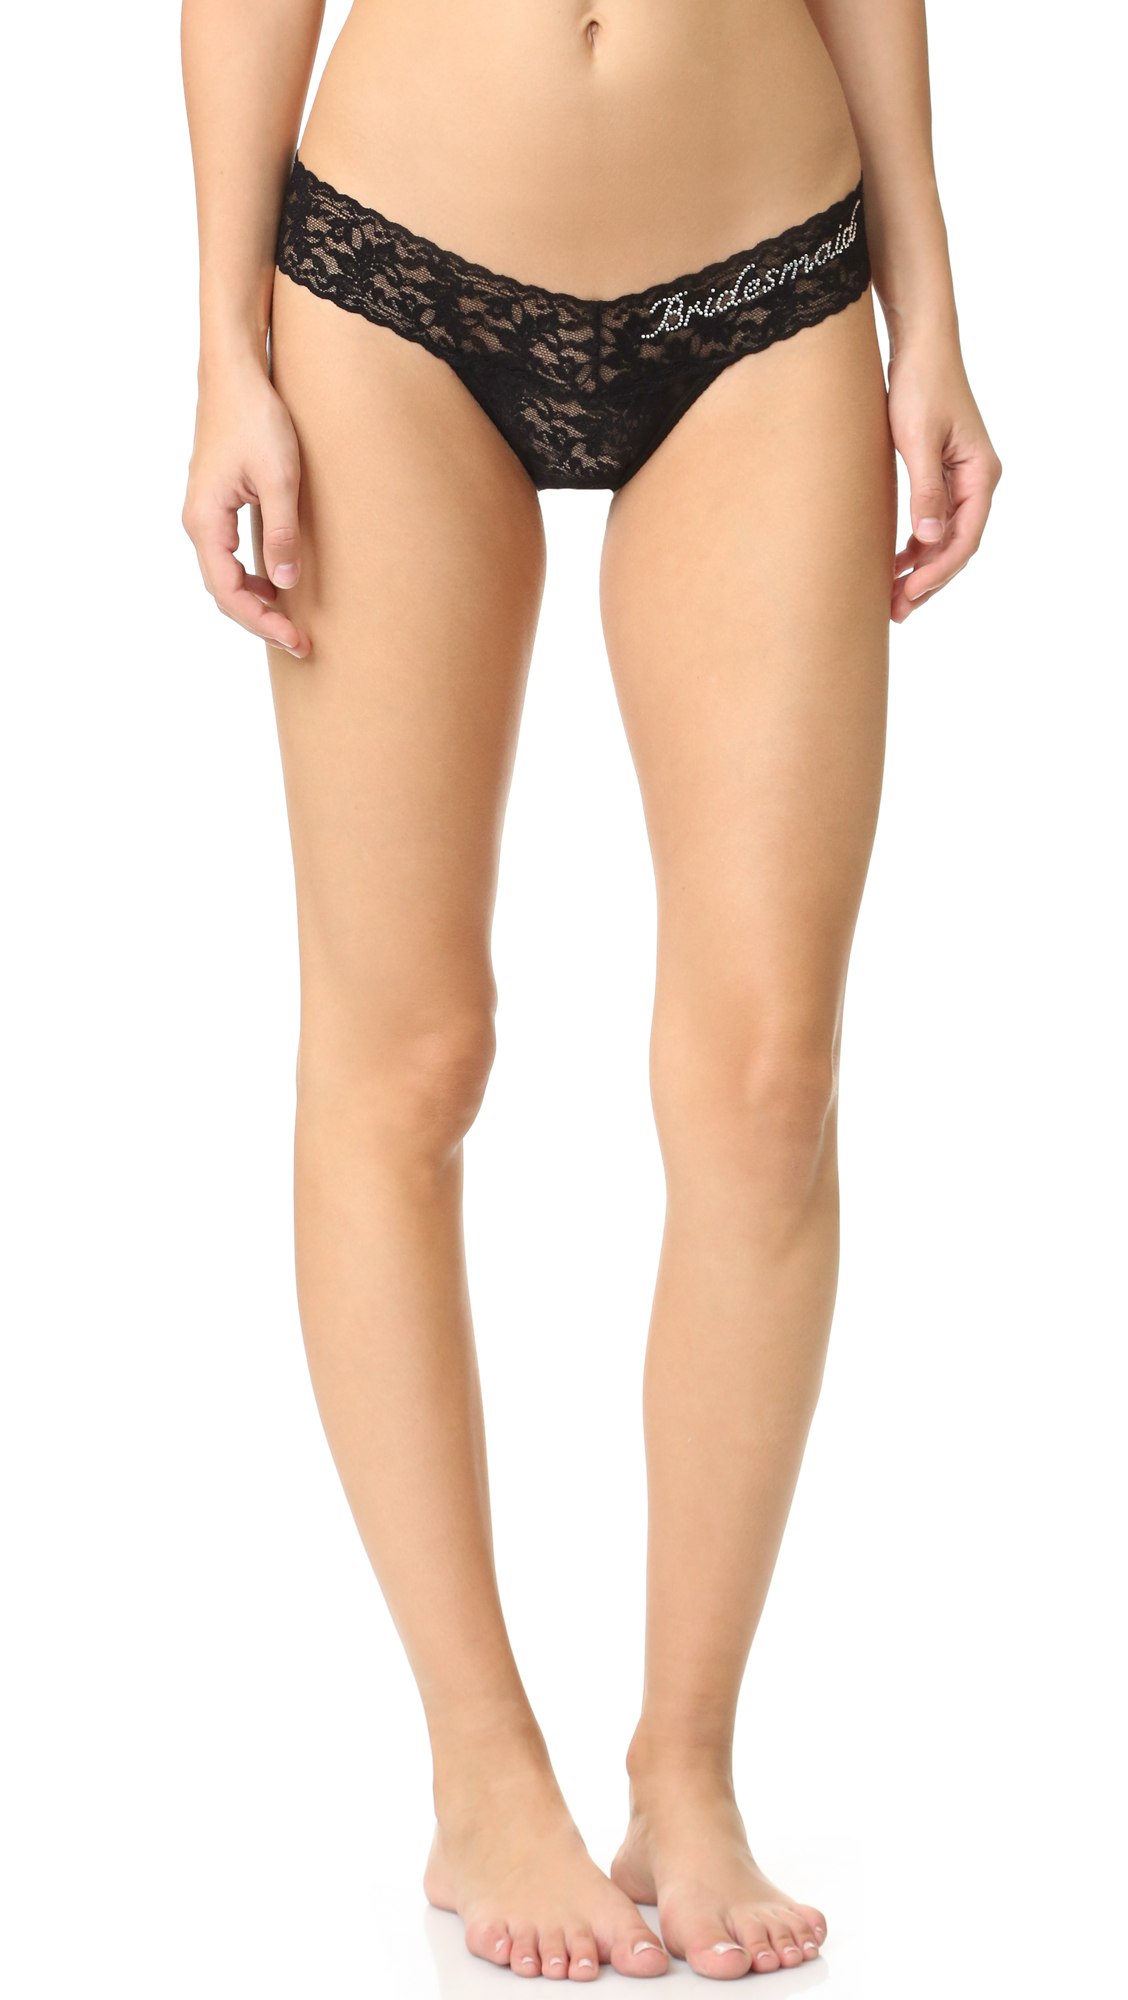 hanky panky female 189025 hanky panky bridesmaid low rise thong blackclear crystals